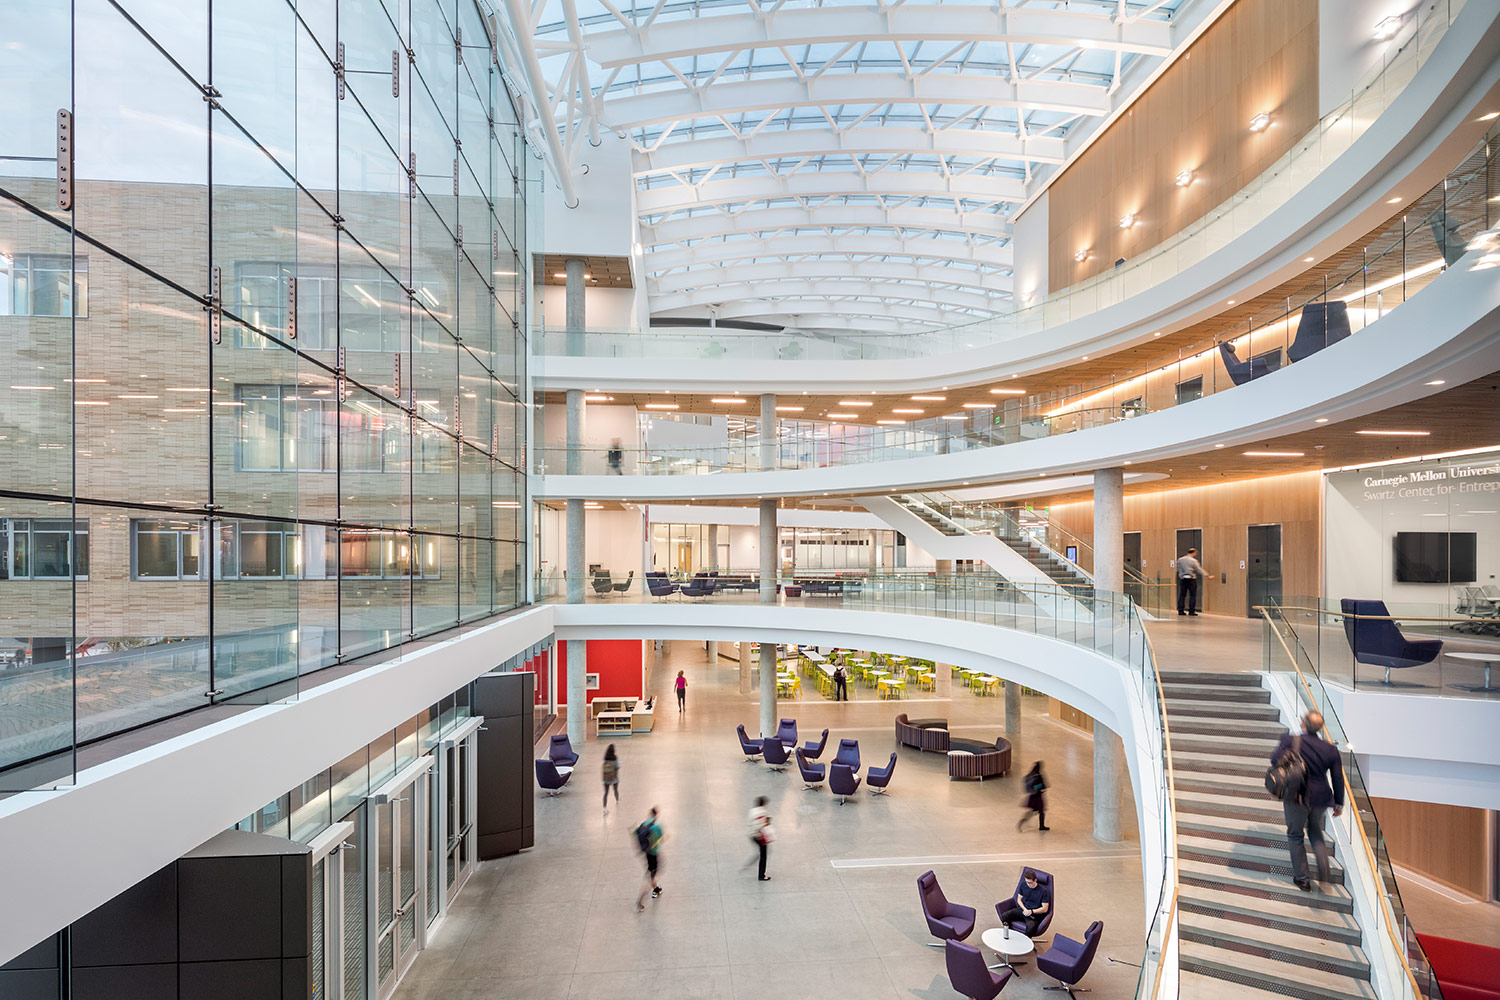 Spacious atrium of Tepper School of Business